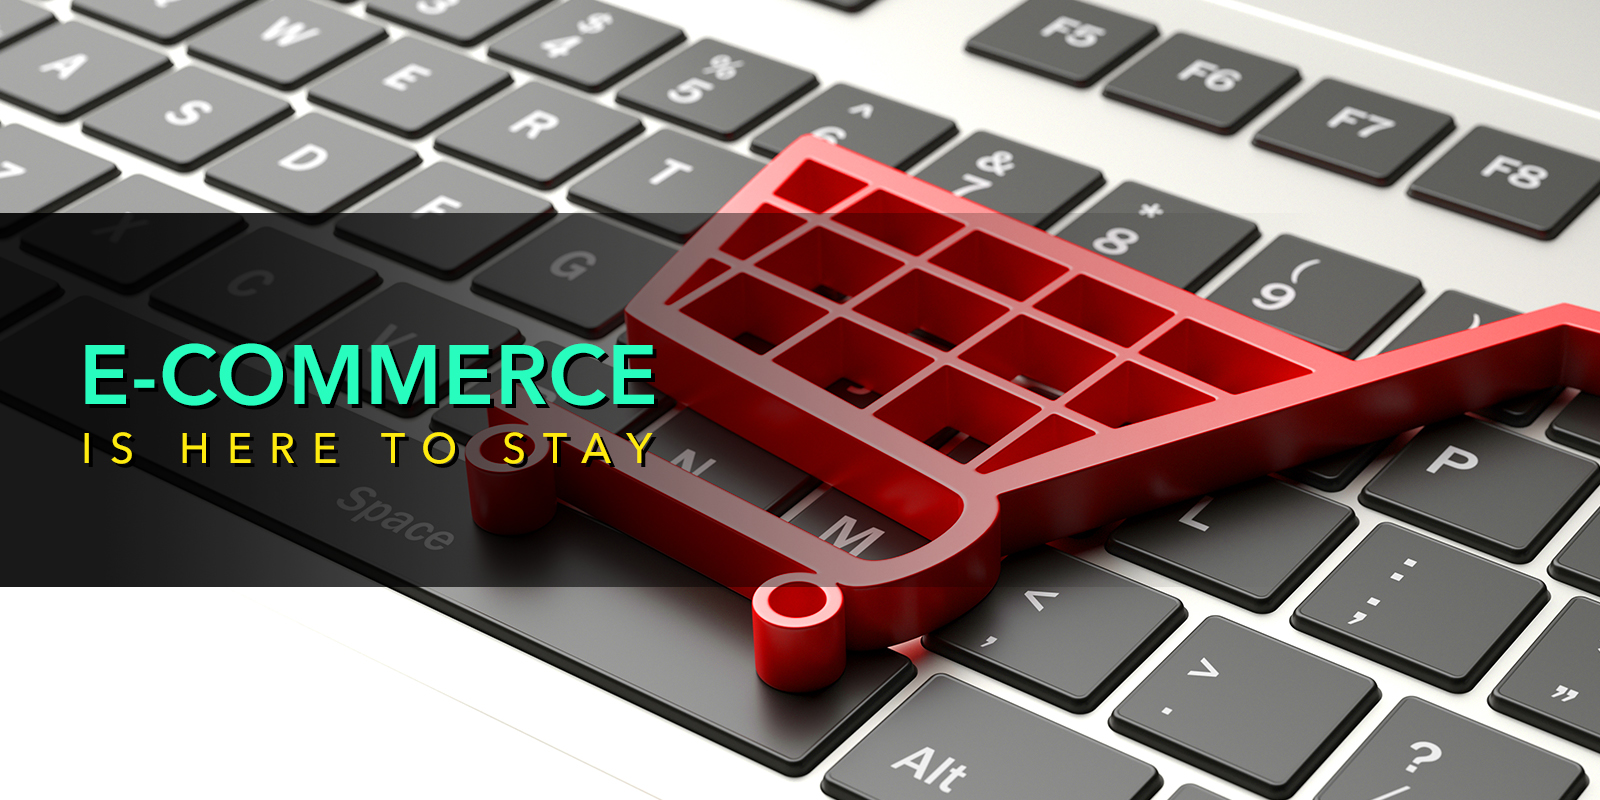 E-commerce Is Here To Stay